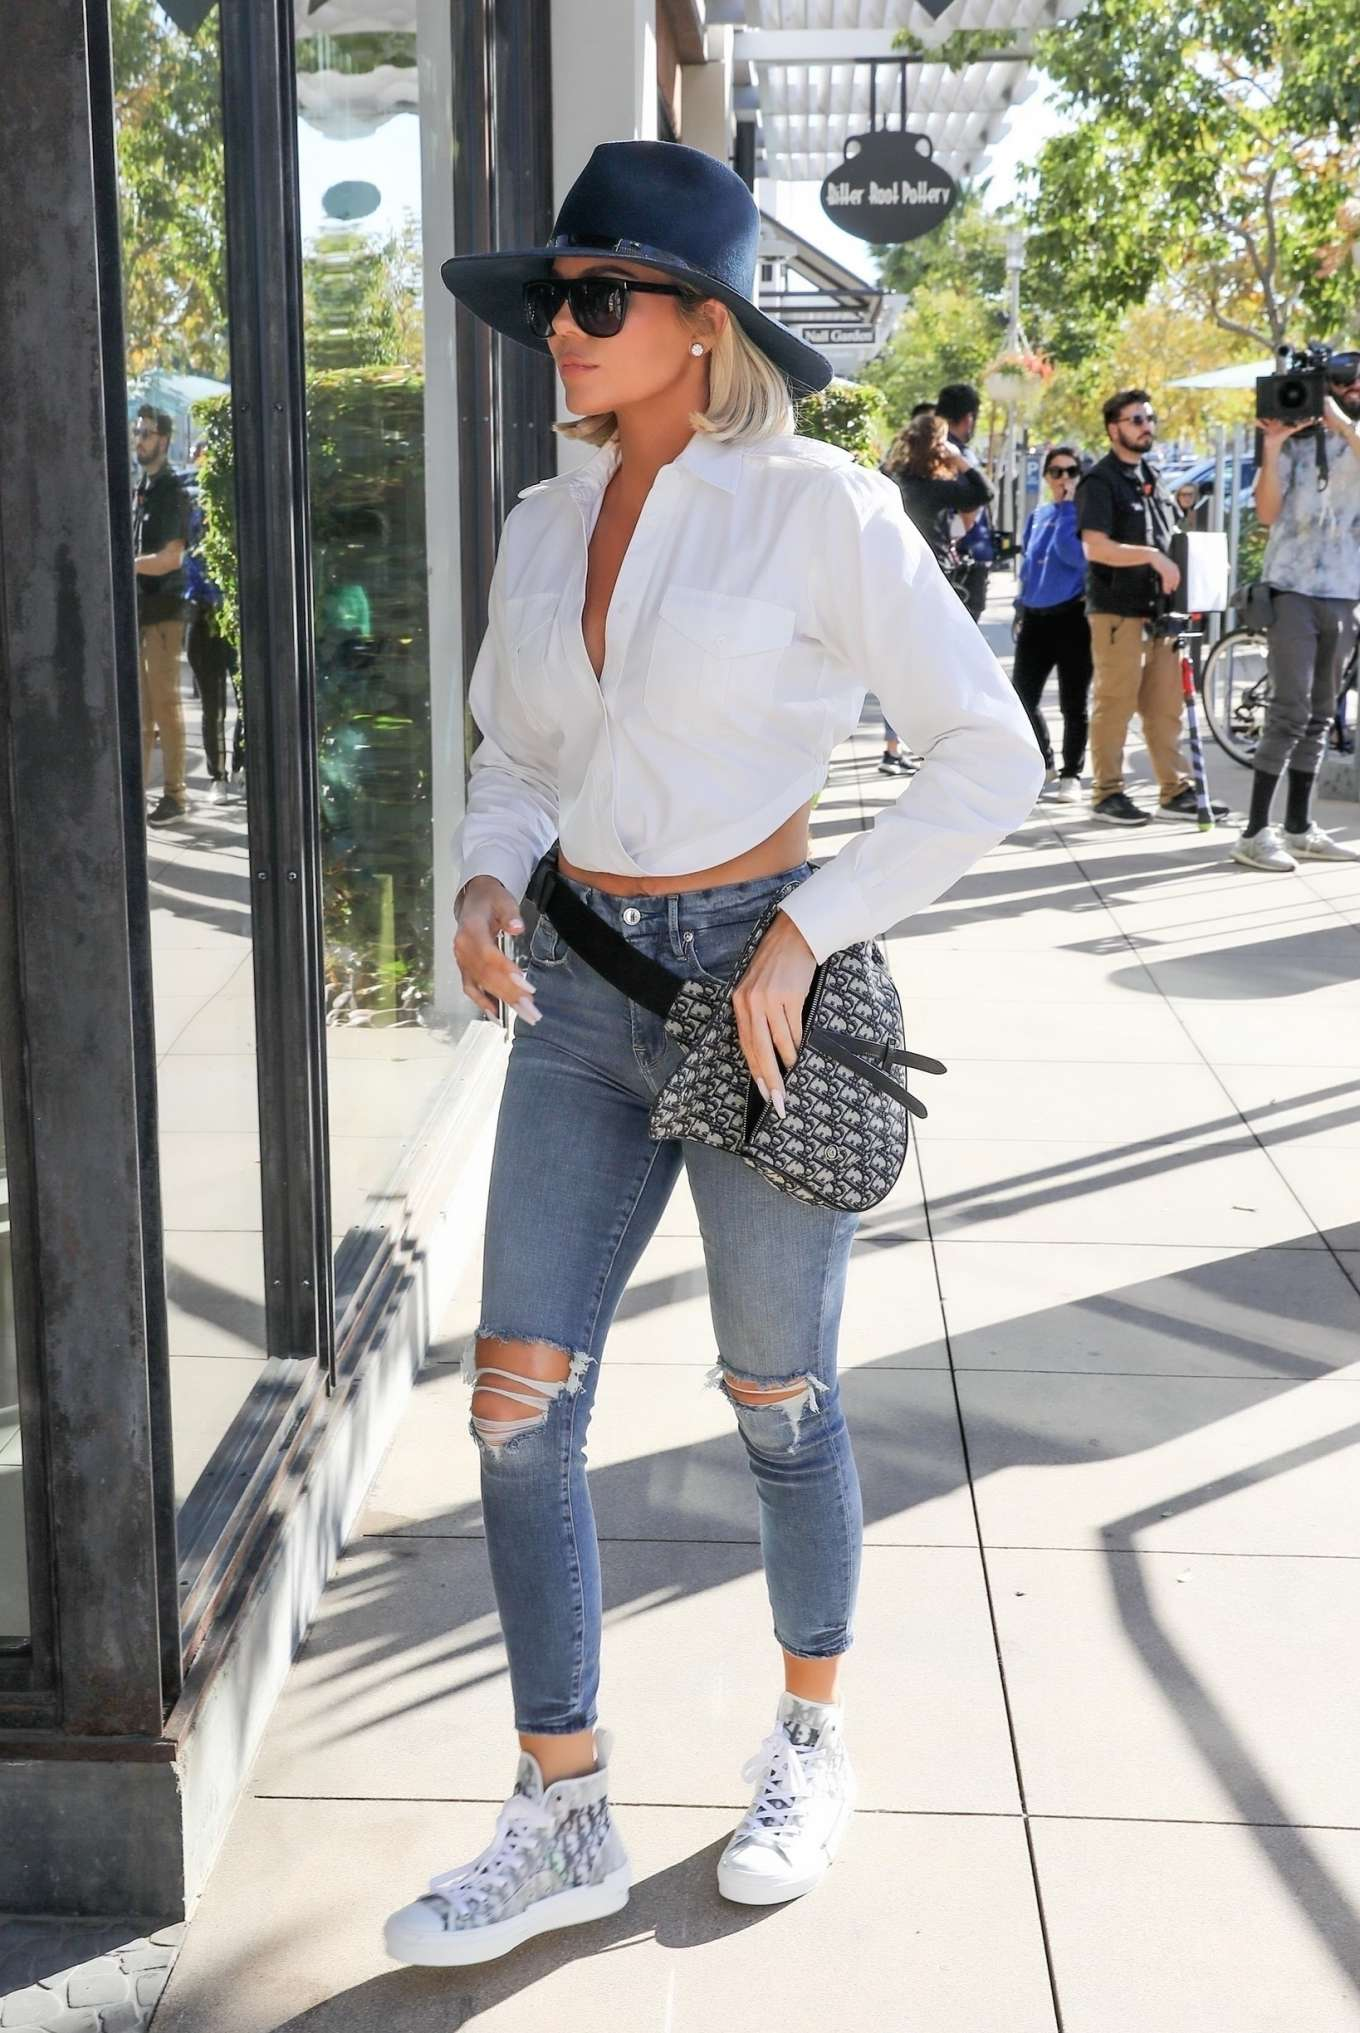 Khloe Kardashian in Ripped Jeans - Out and about in Woodland Hills